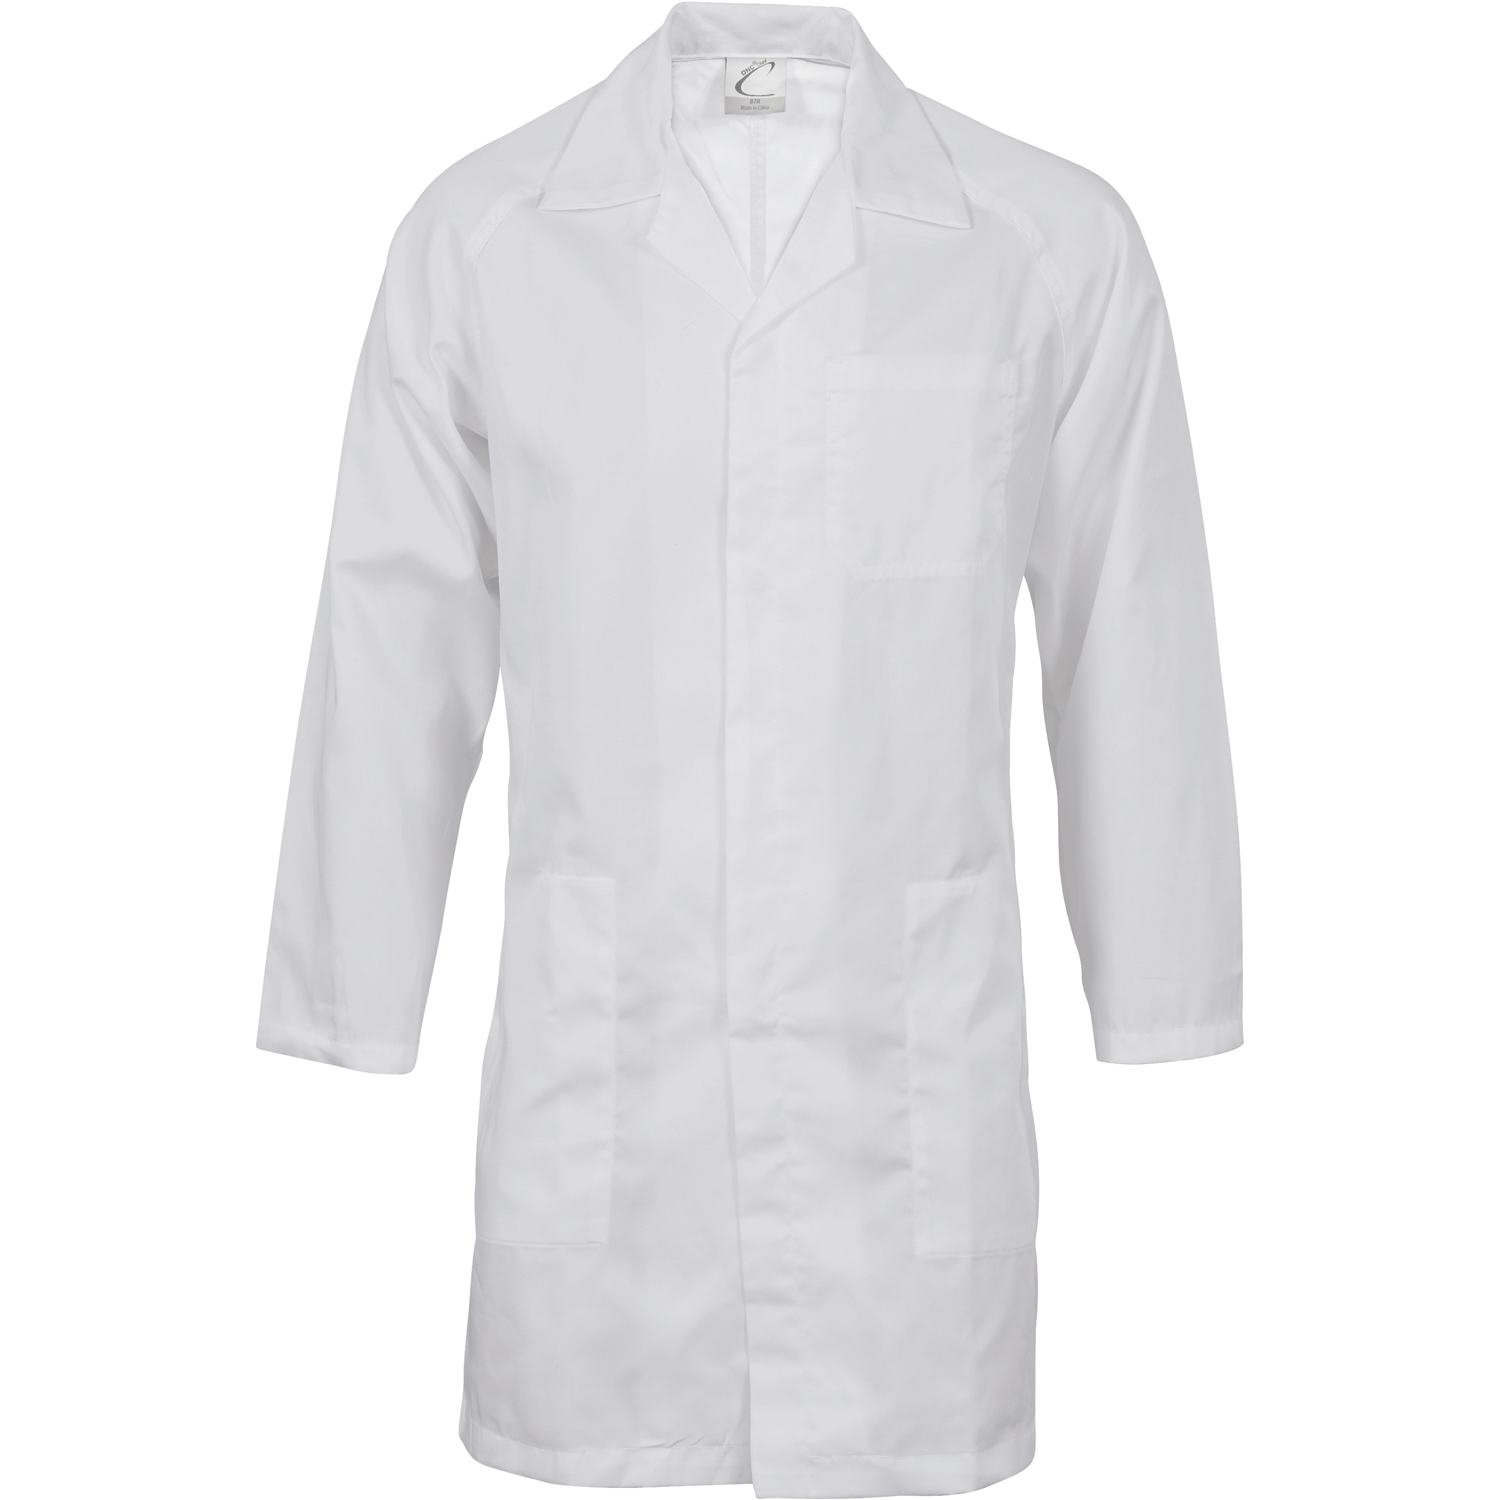 Soft Mens Shirts